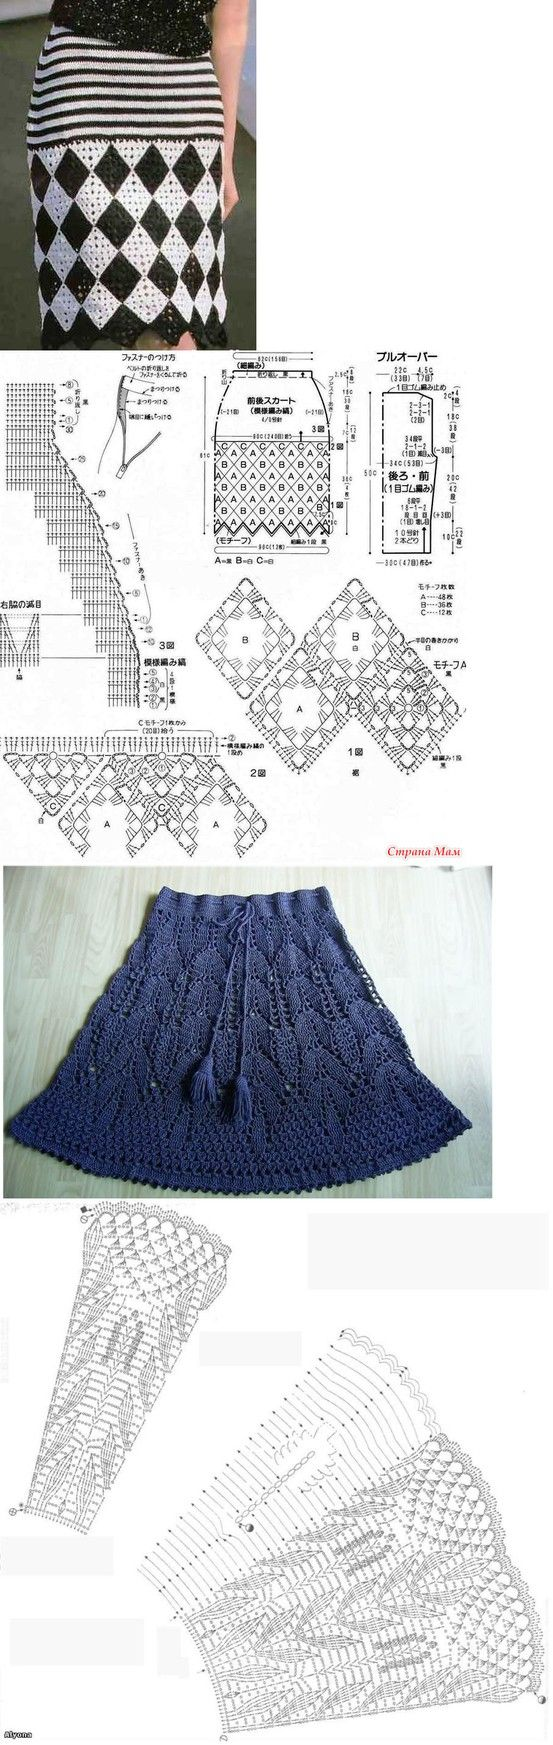 Crochet skirt (blue)